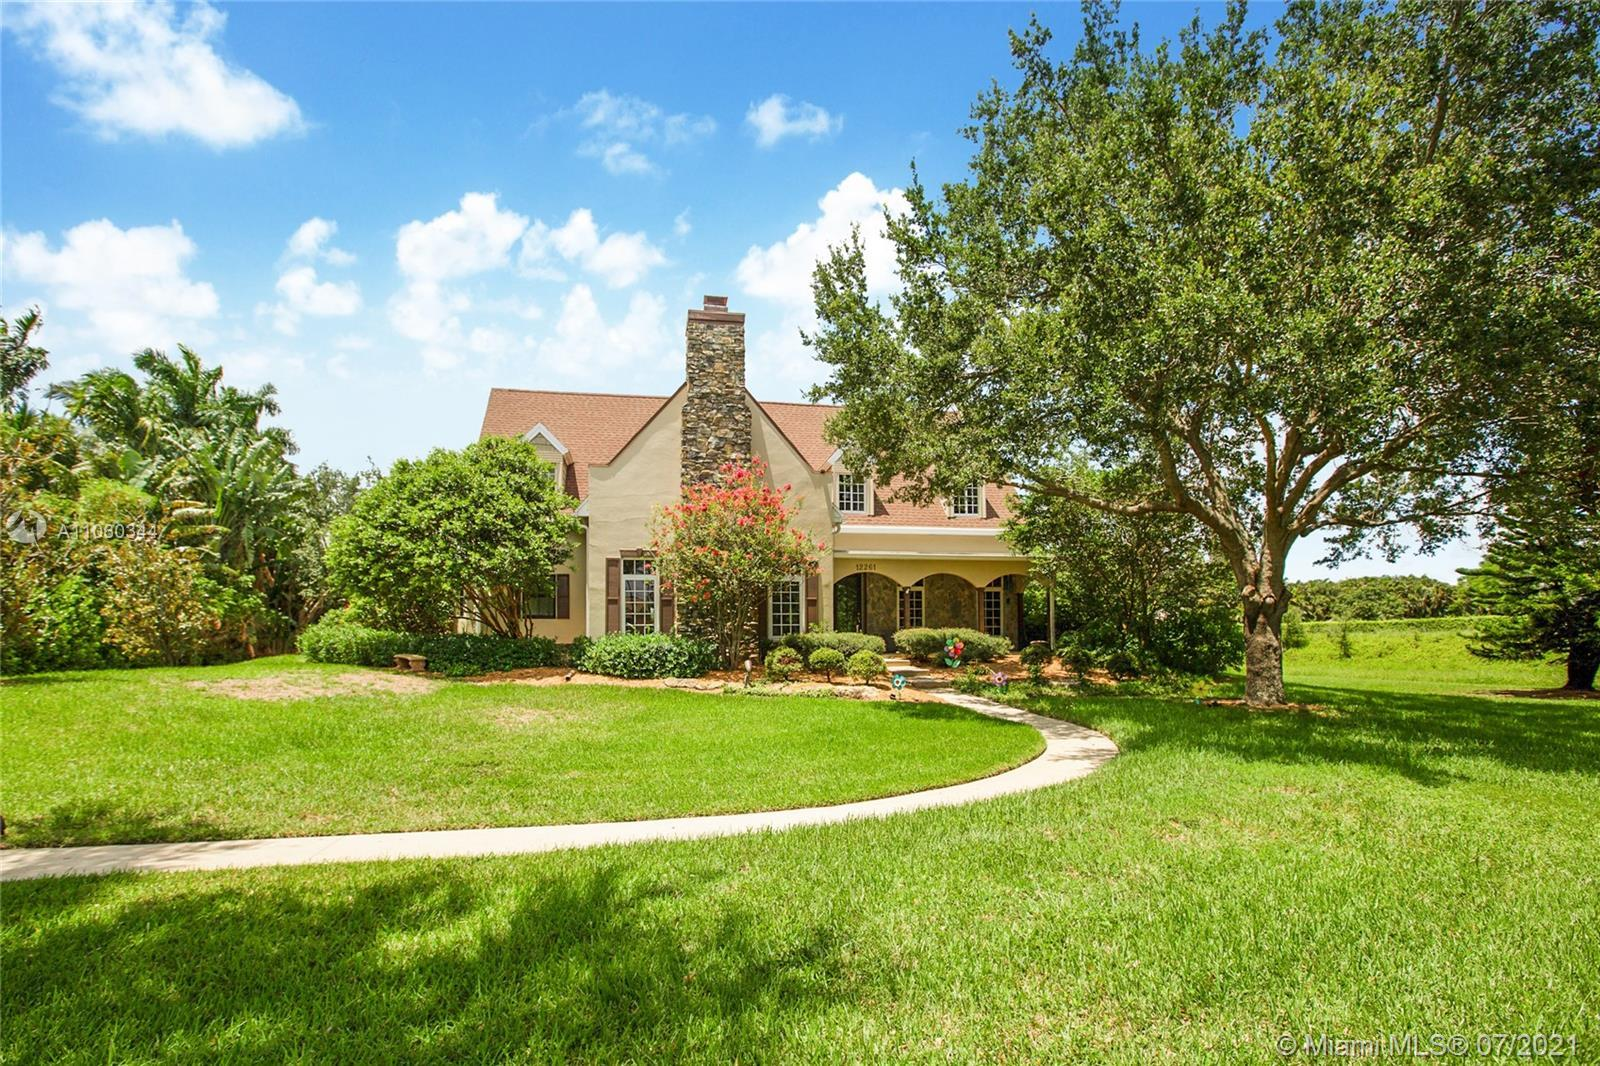 All about the LOCATION! One of a kind French country estate with a modern farmhouse twist! Upon dr